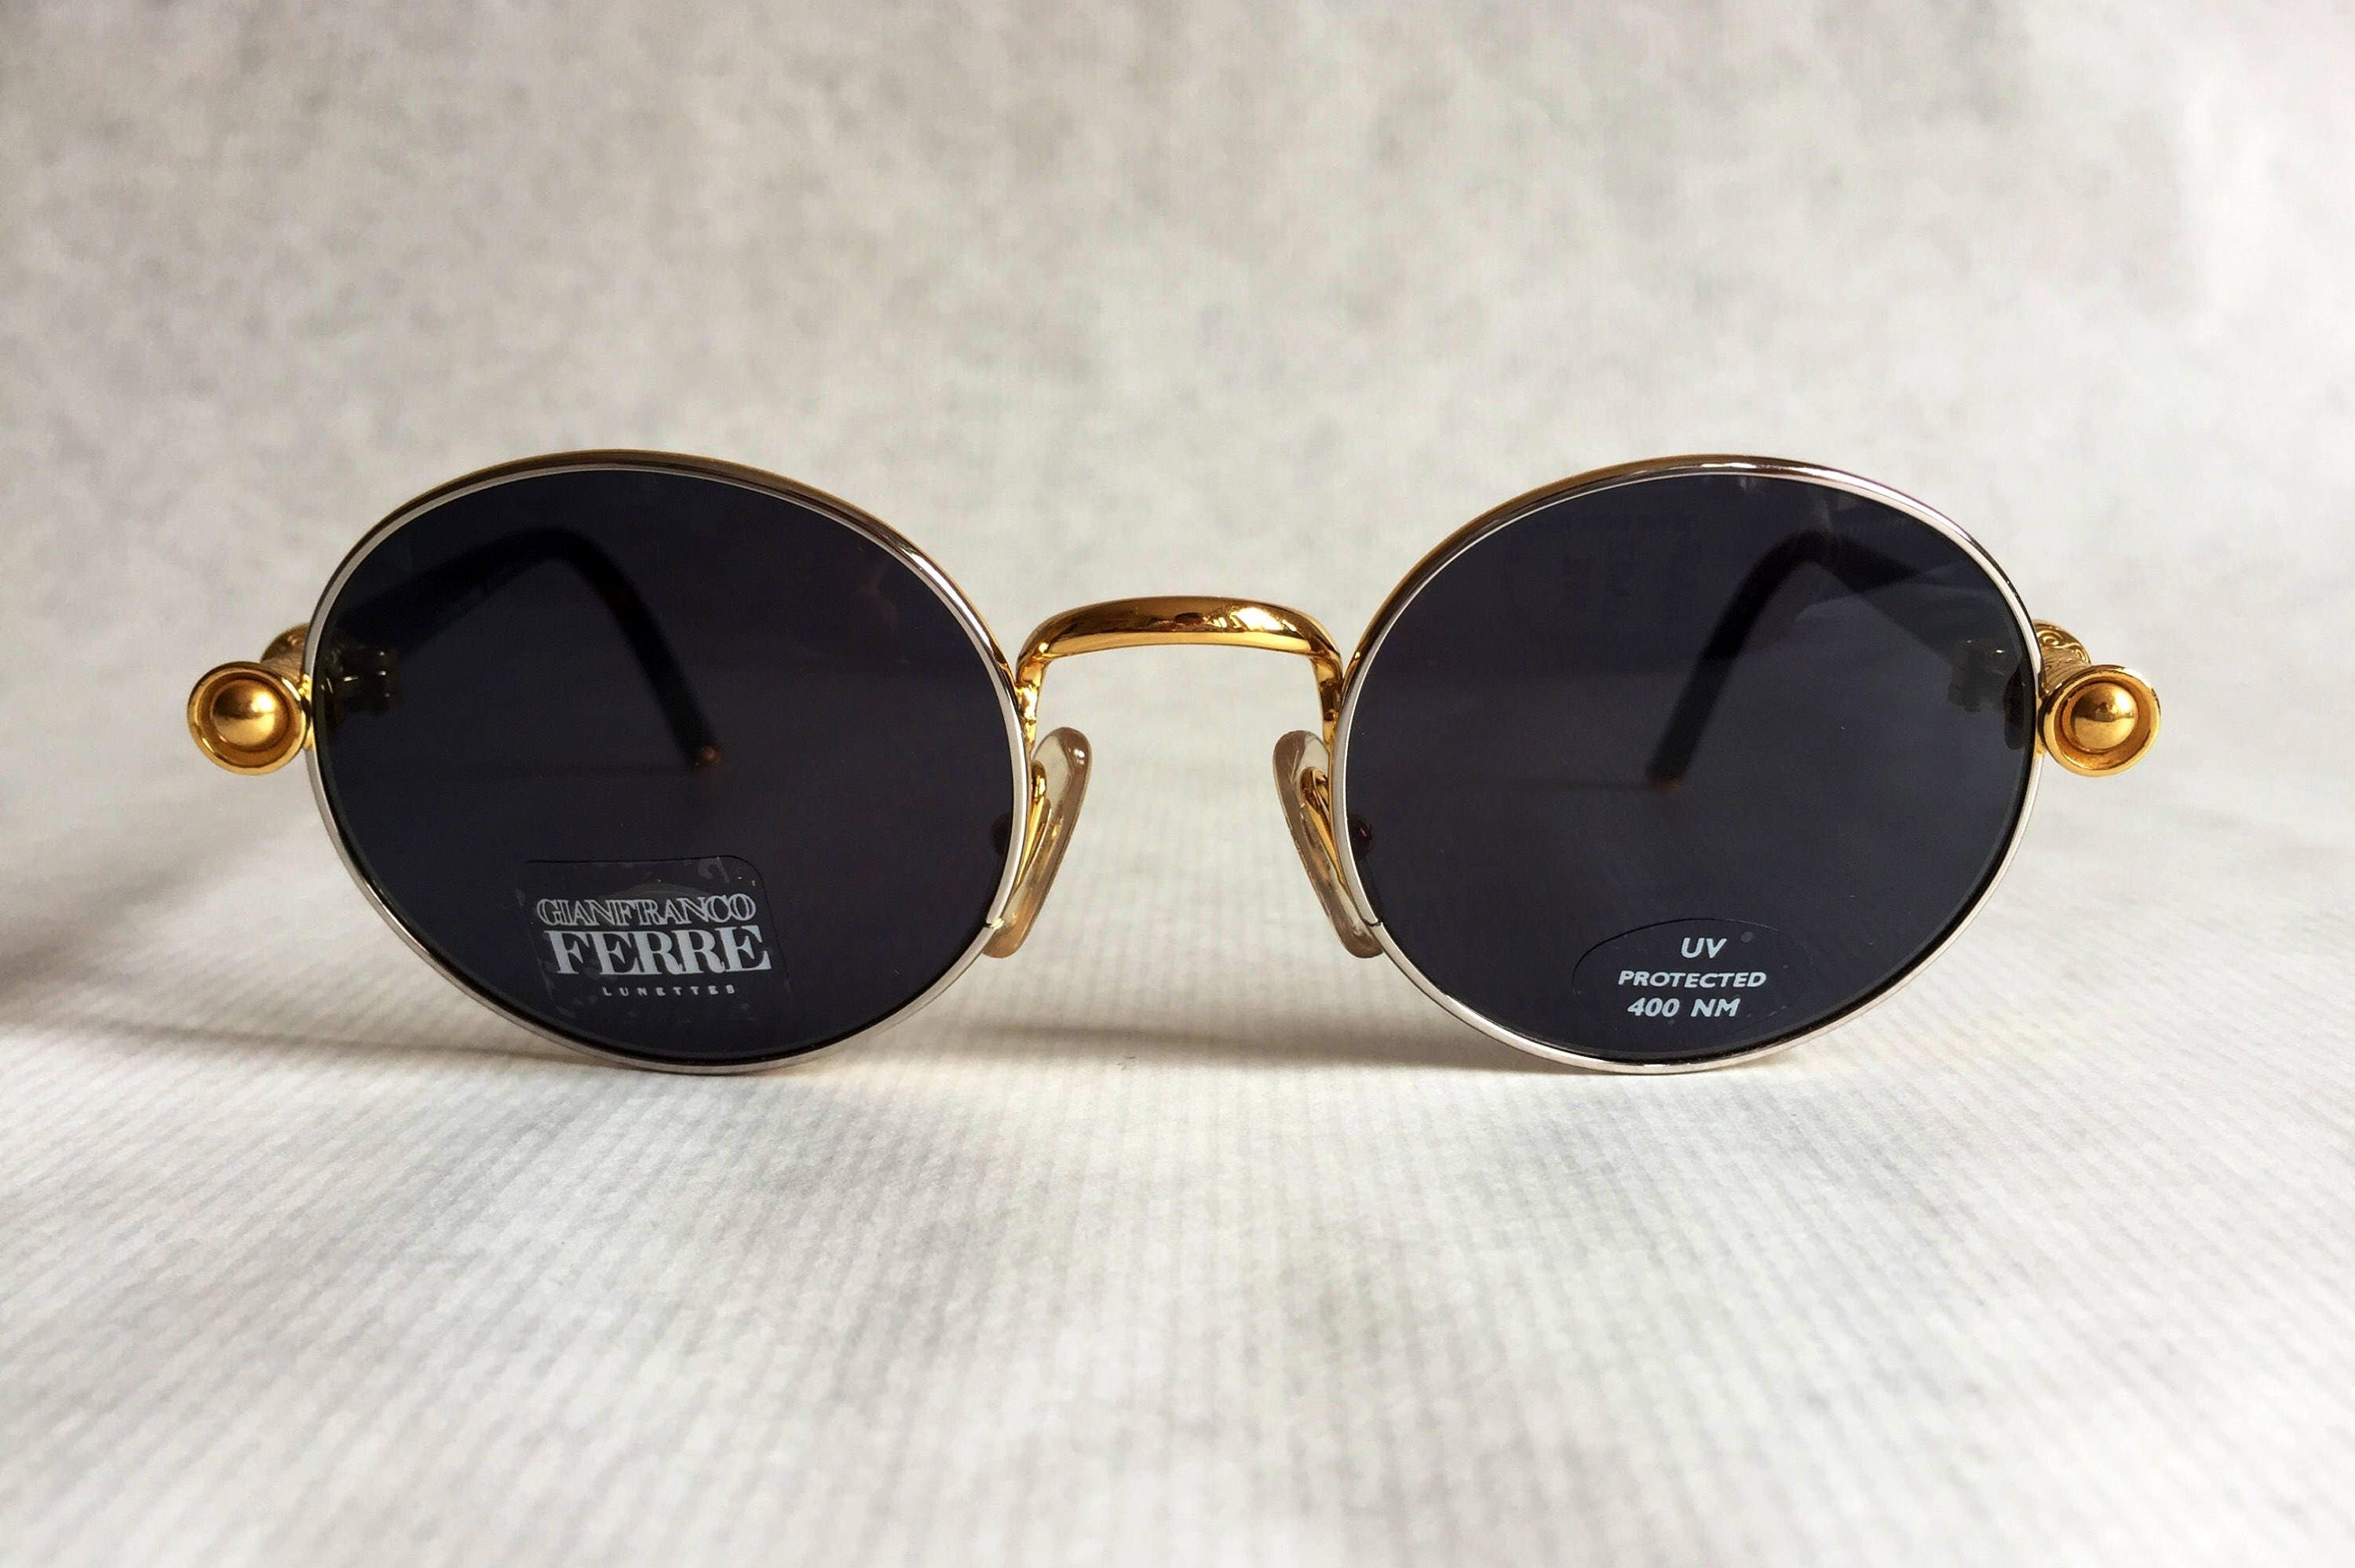 a32eeec741f Gianfranco Ferre GFF 352 S Vintage Sunglasses New Old Stock including Case.  gallery photo ...